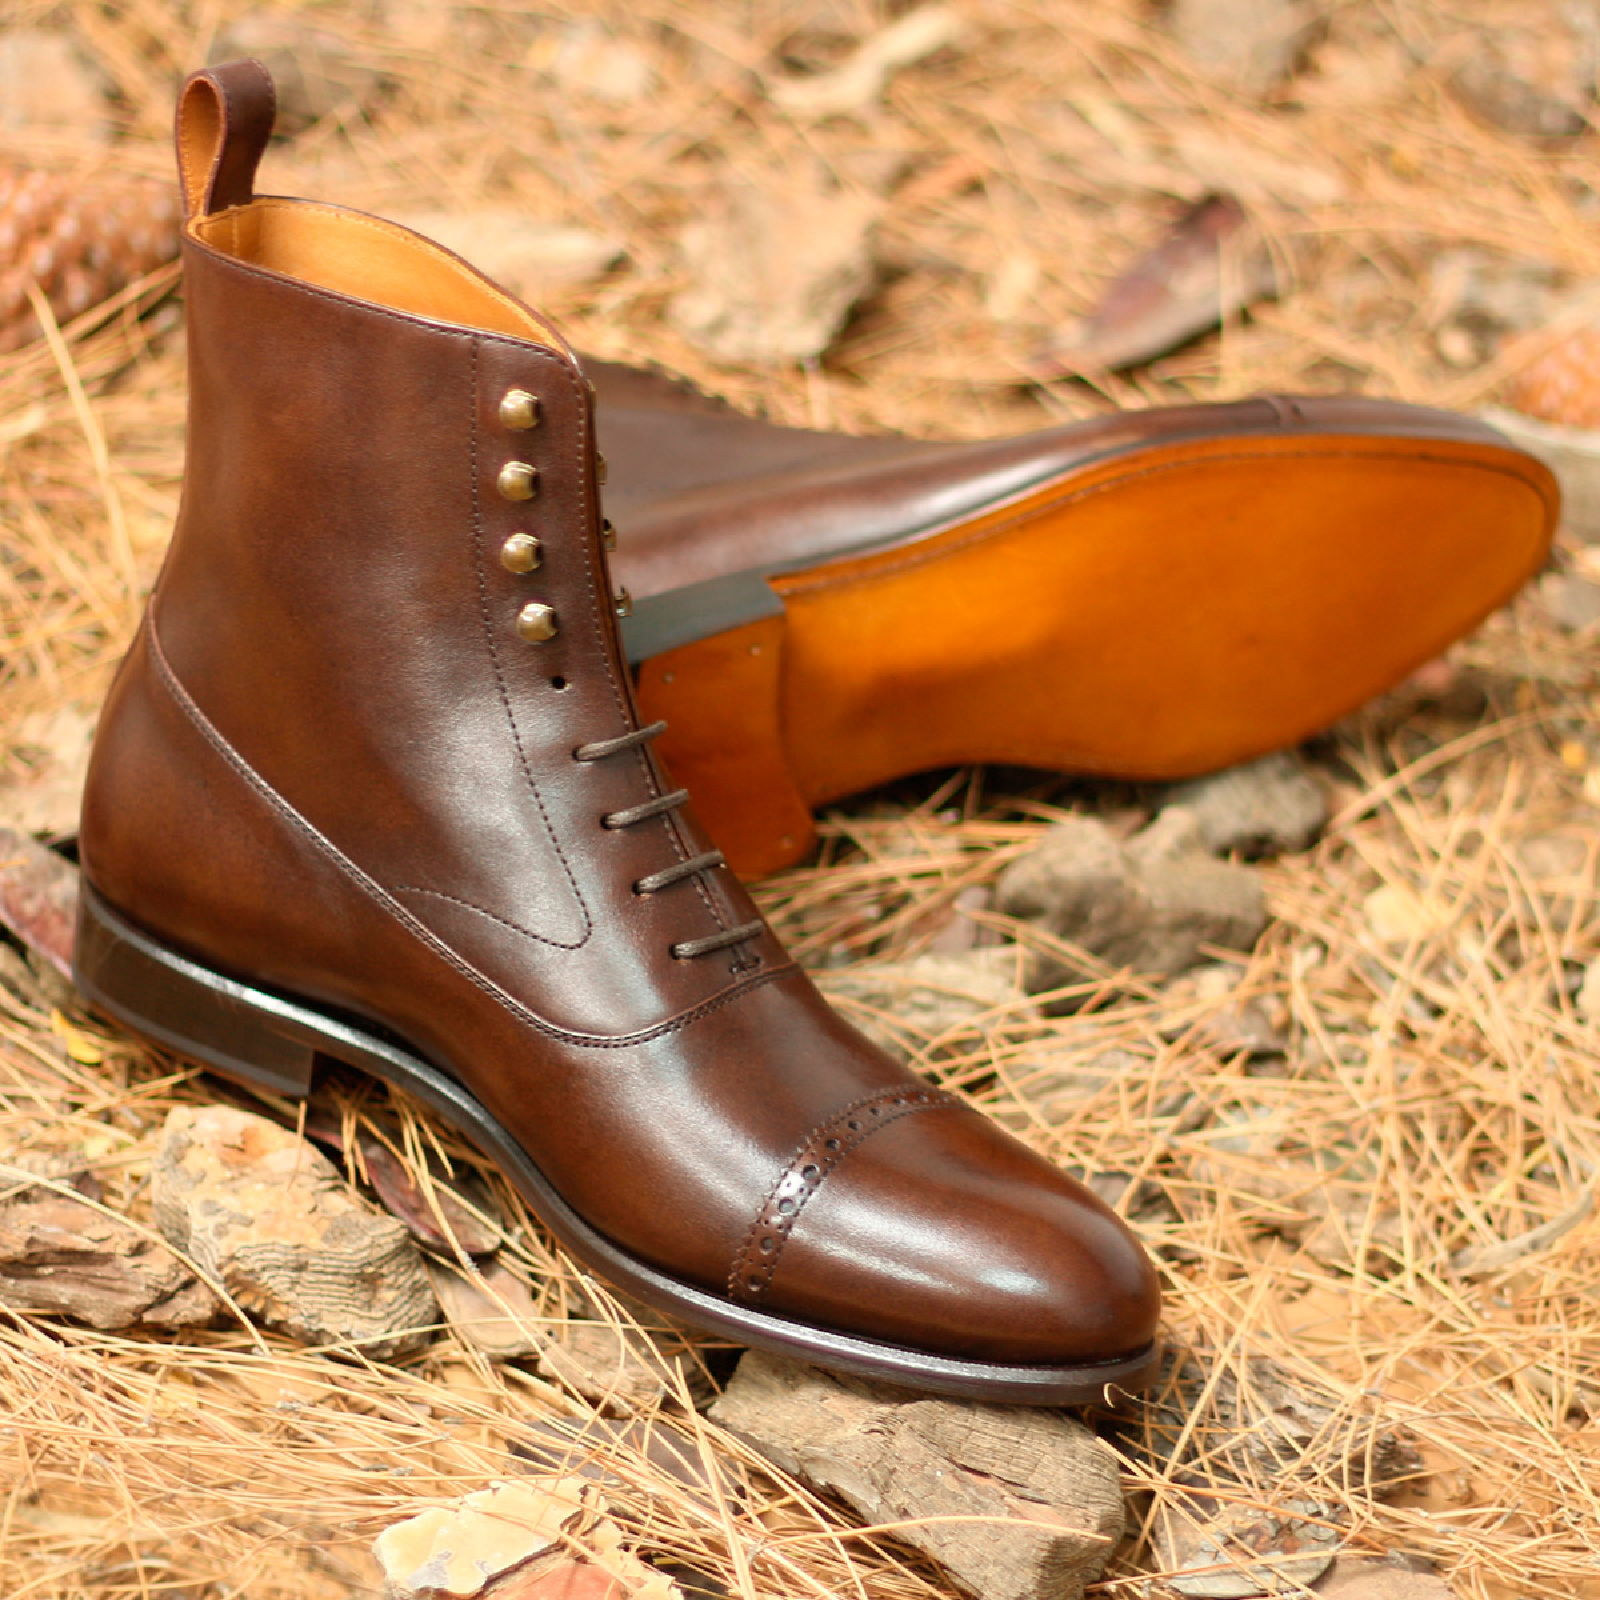 Balmoral boot dark brown painted calf : 260€